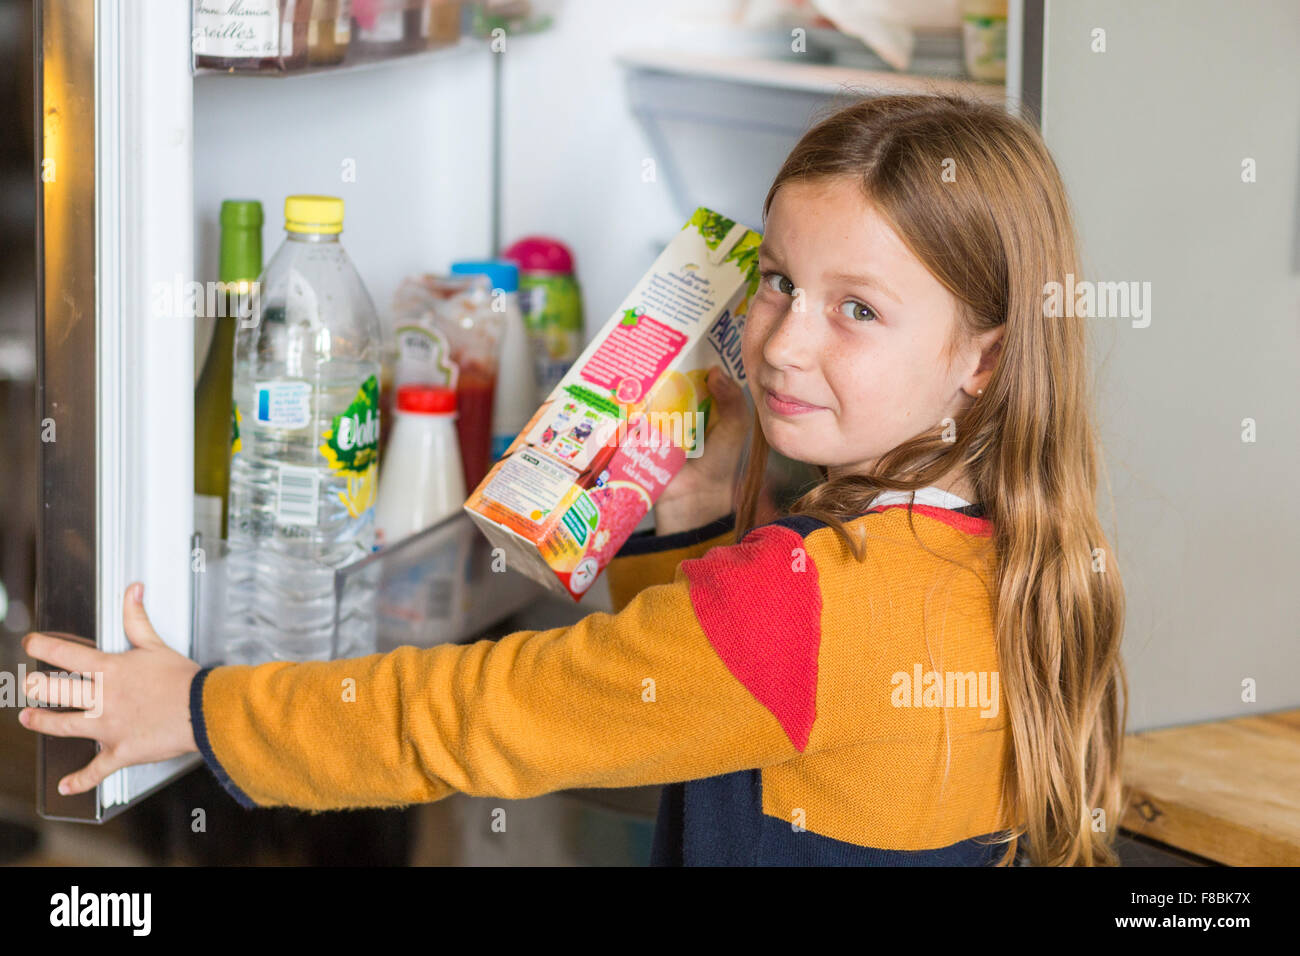 8 year old boy in front of a fridge. - Stock Image